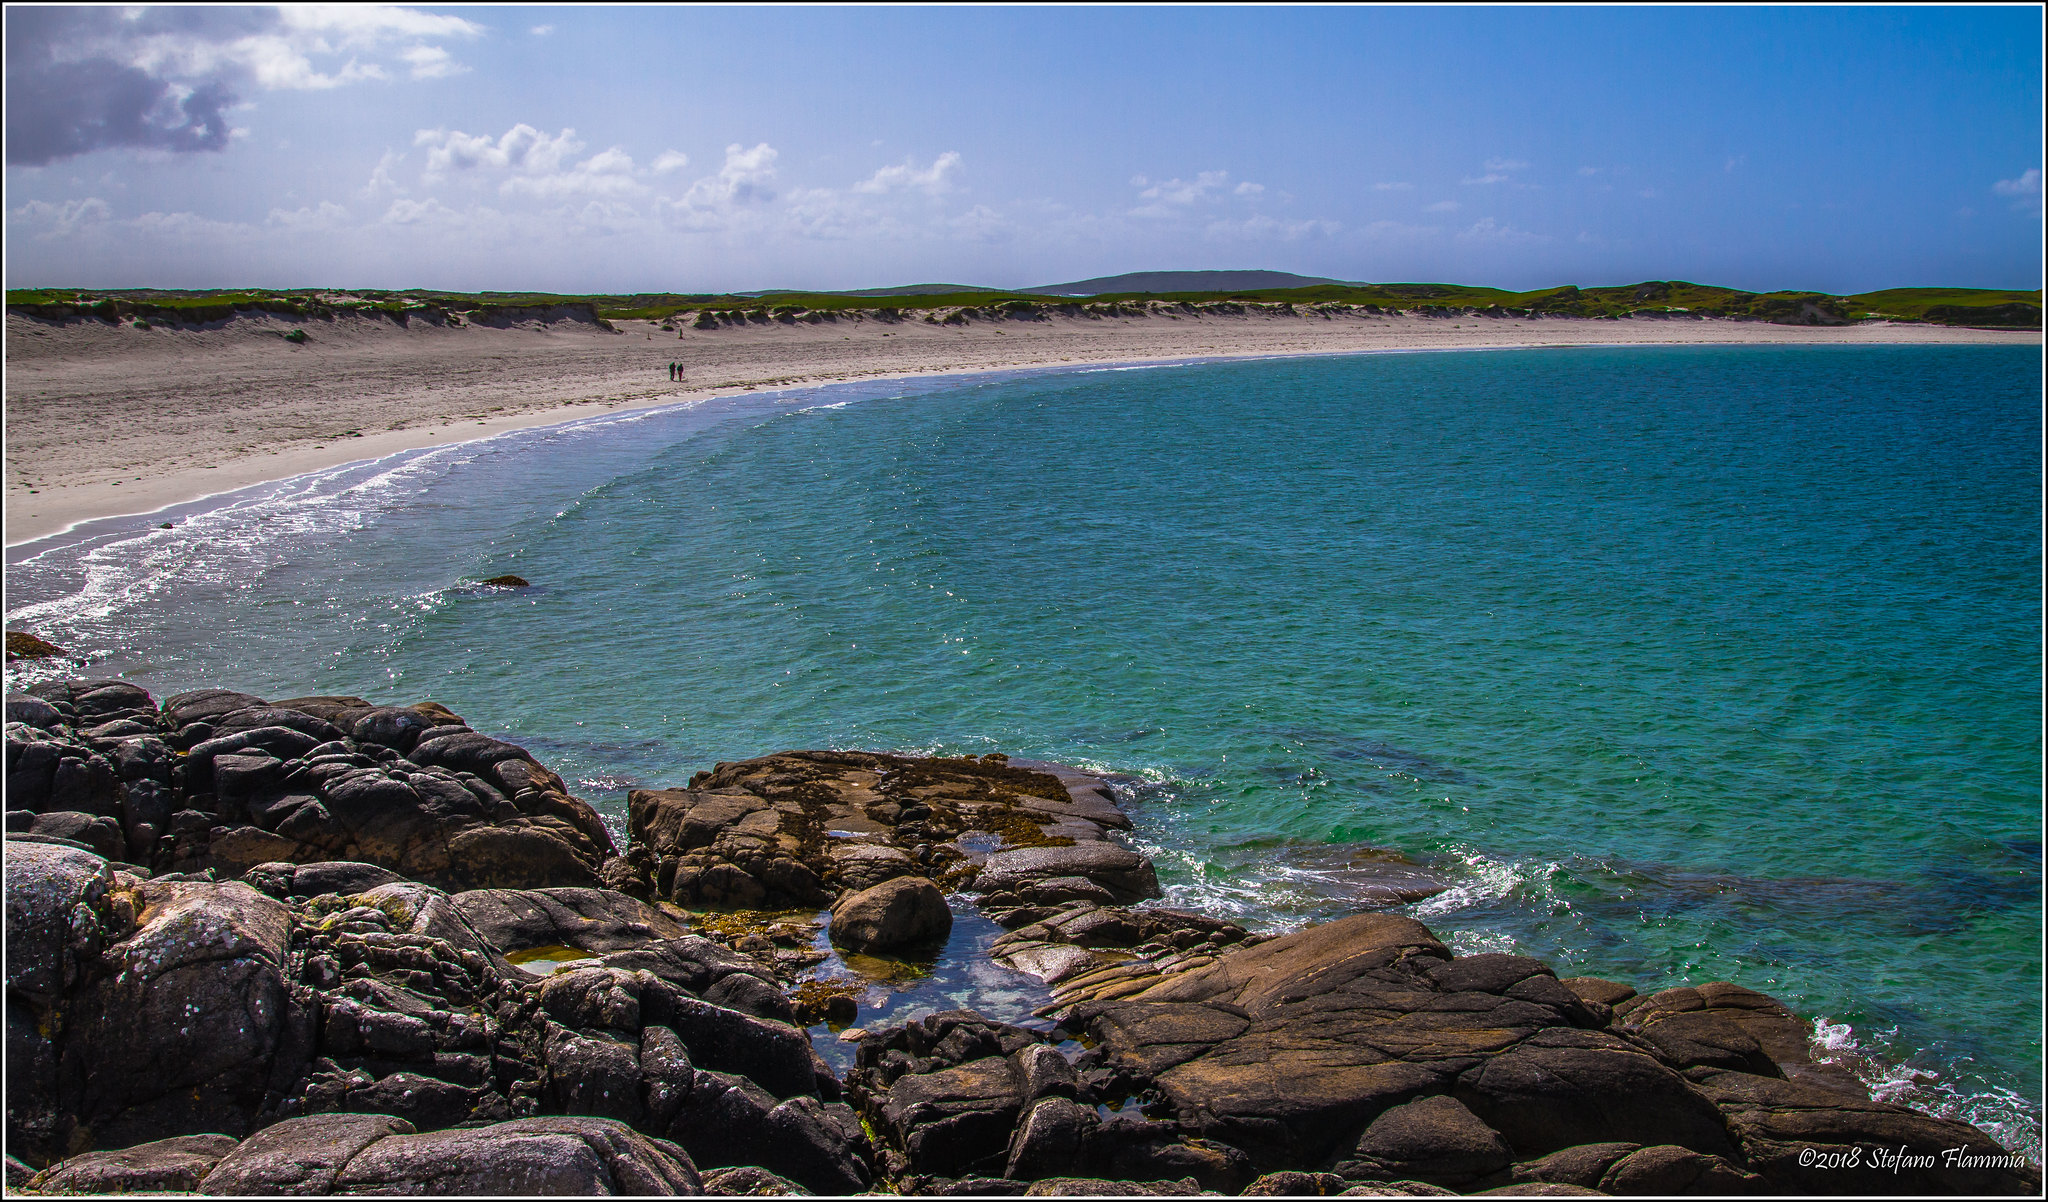 Dog's Bay Beach, Roundstone - Ireland